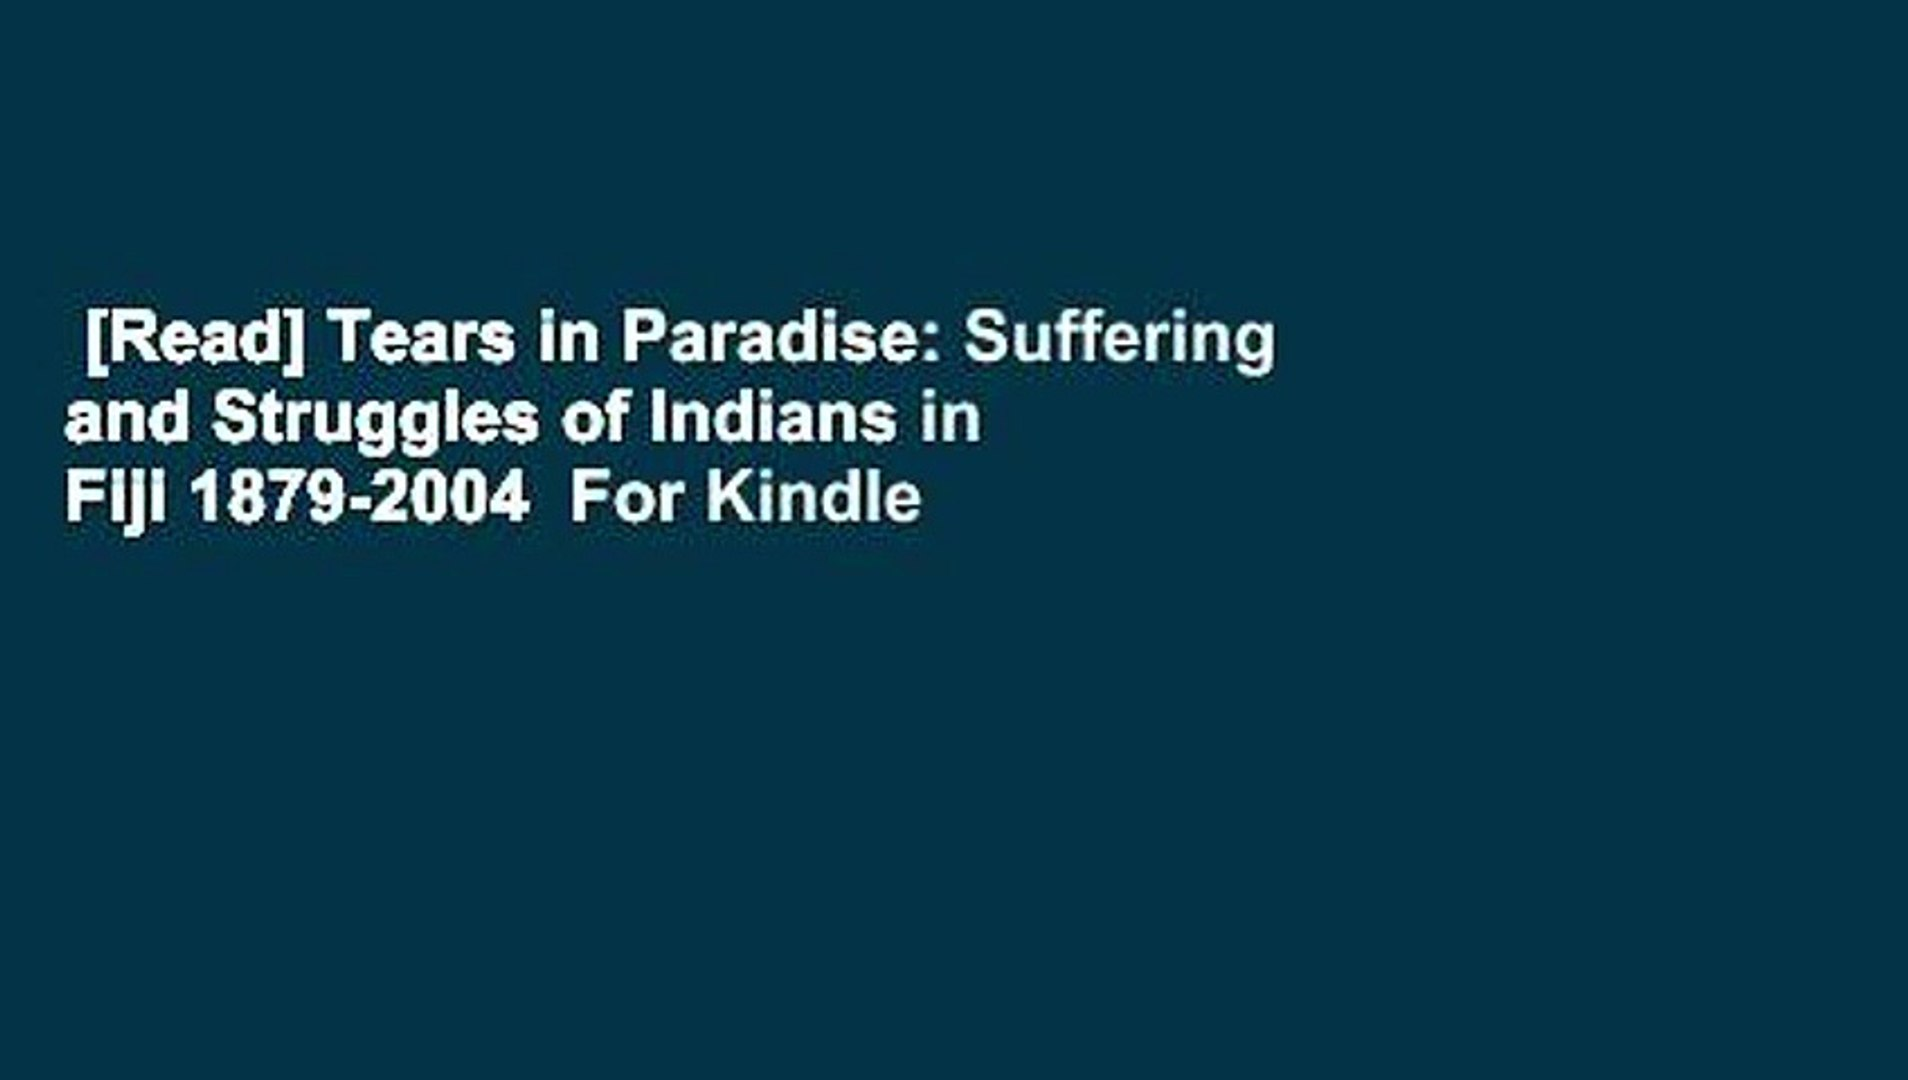 [Read] Tears in Paradise: Suffering and Struggles of Indians in Fiji 1879-2004  For Kindle